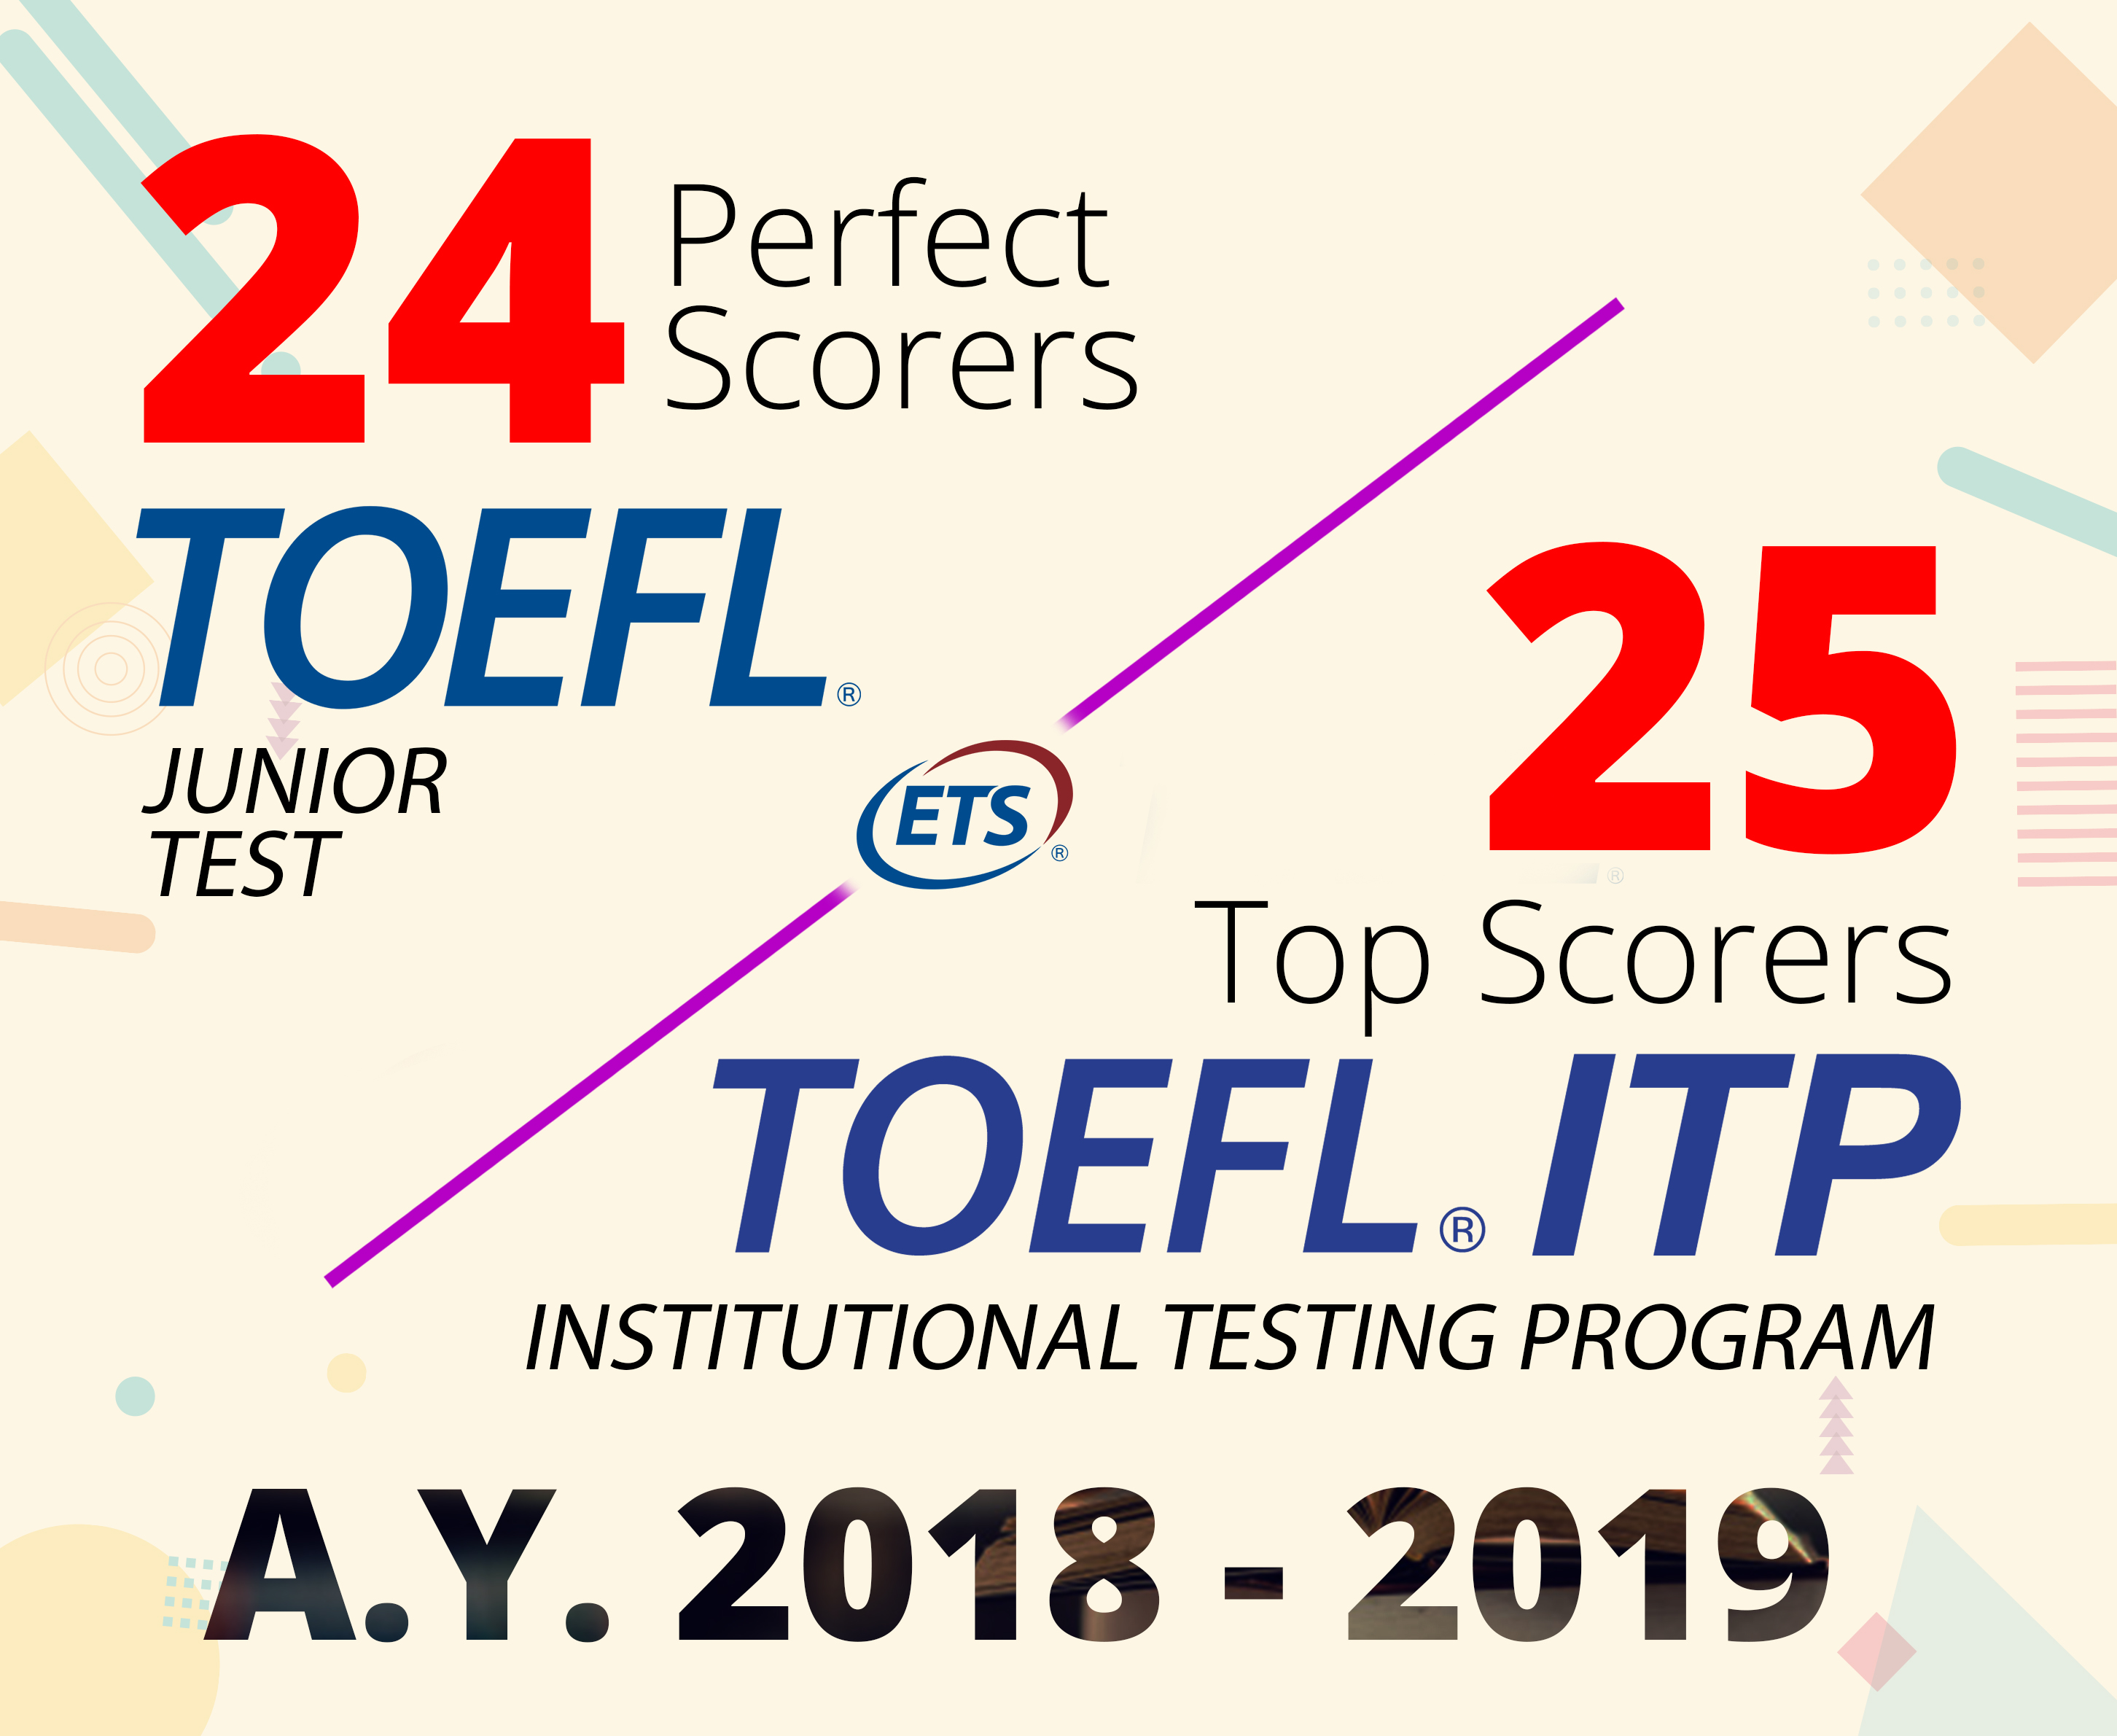 PERFECT and TOP Scorers at TOEFL A.Y. 2018 – 2019